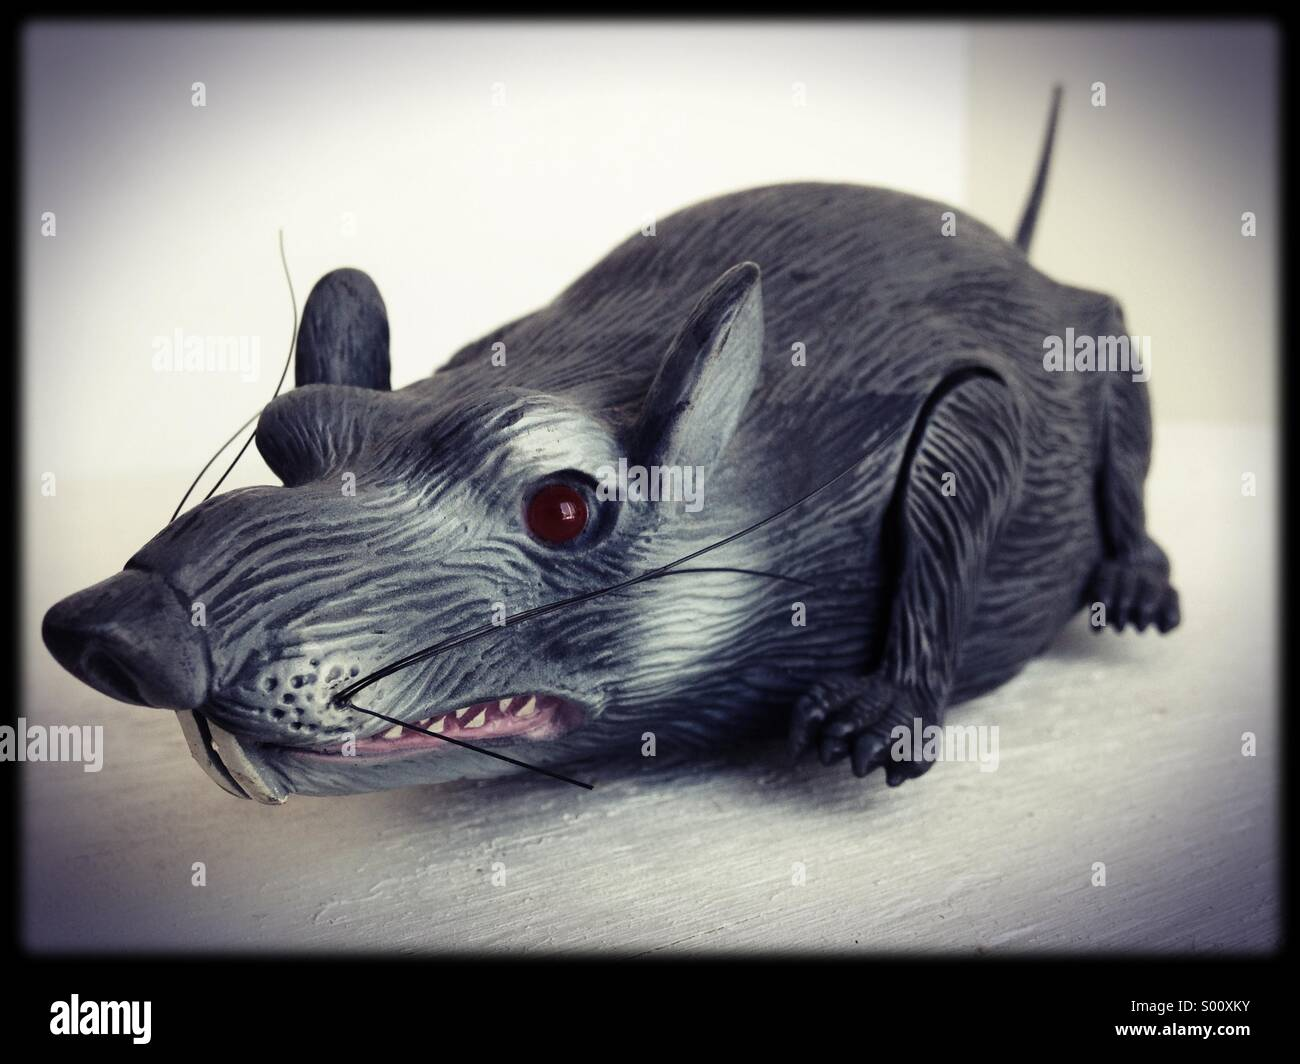 A toy rat. - Stock Image